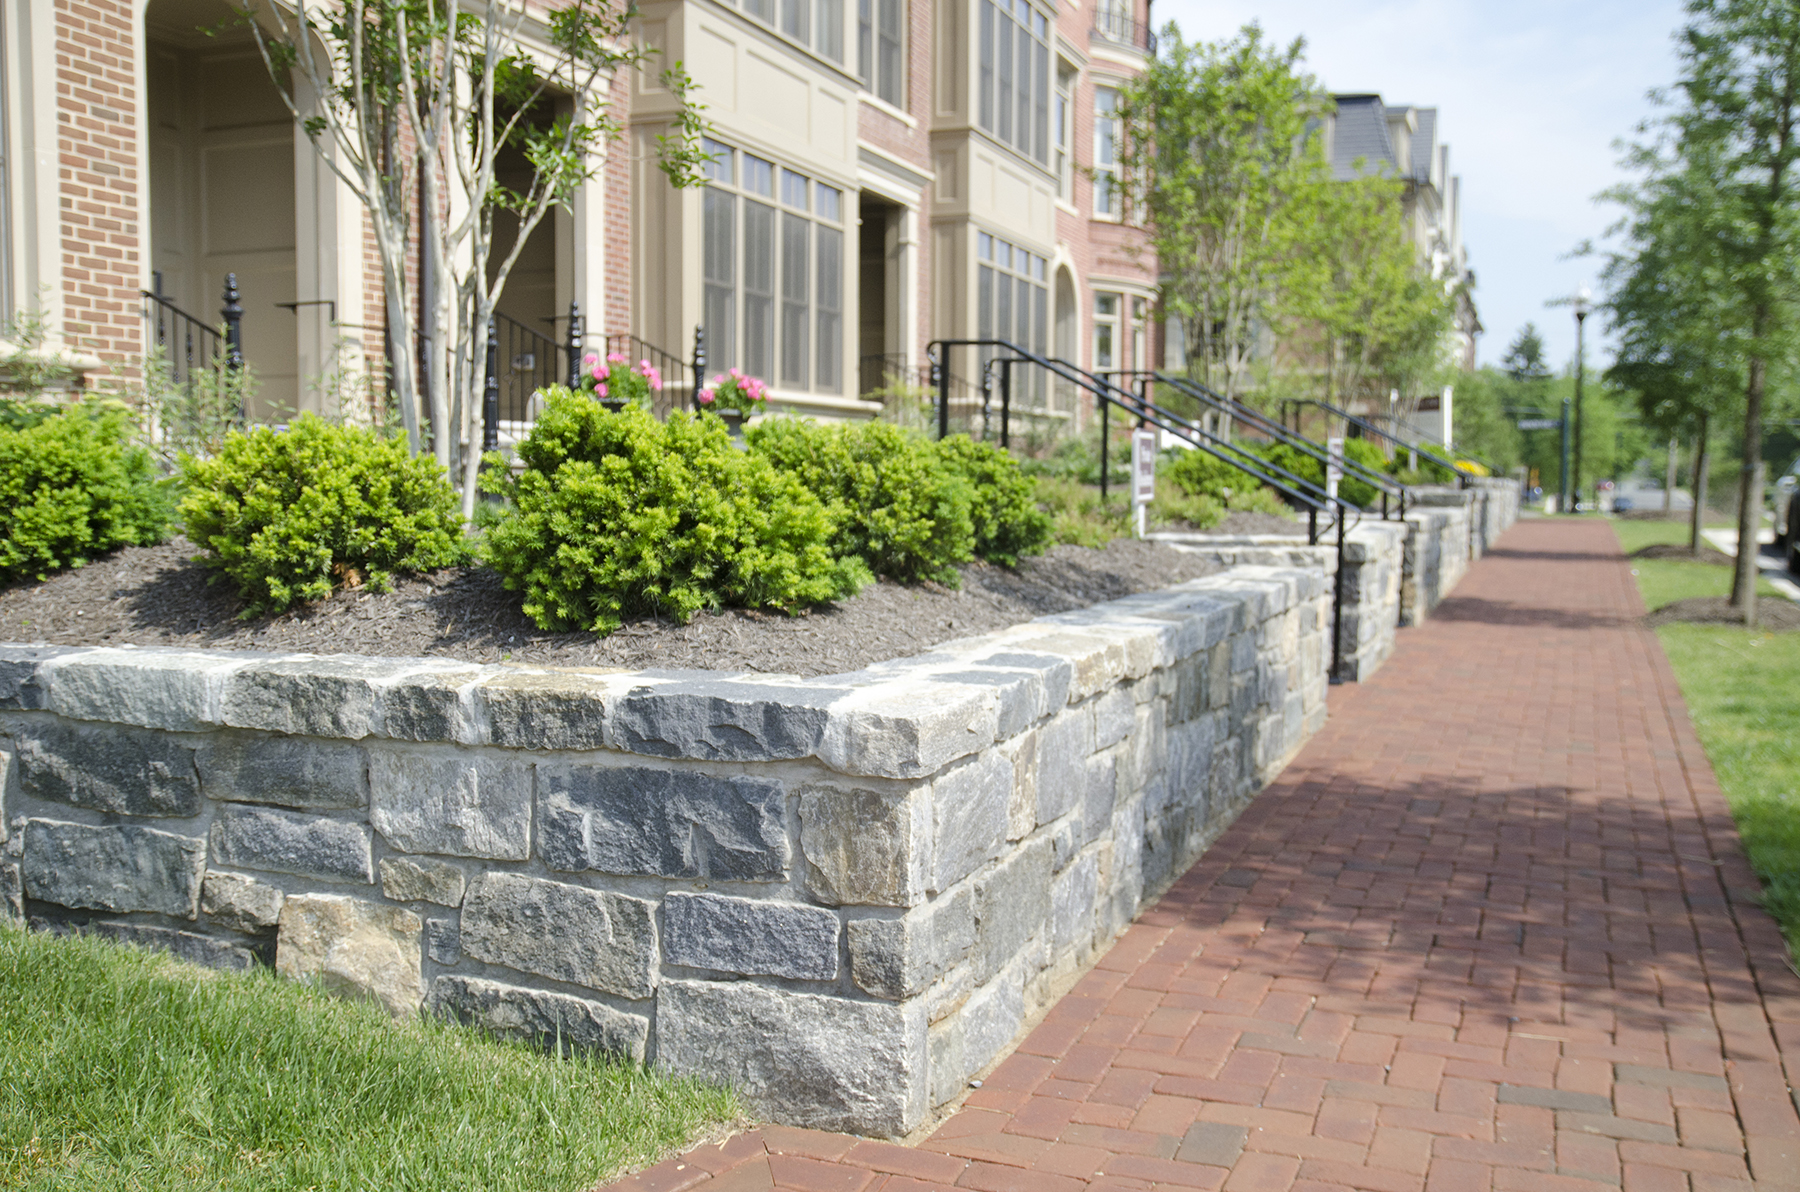 sidewalk and stone flower beds